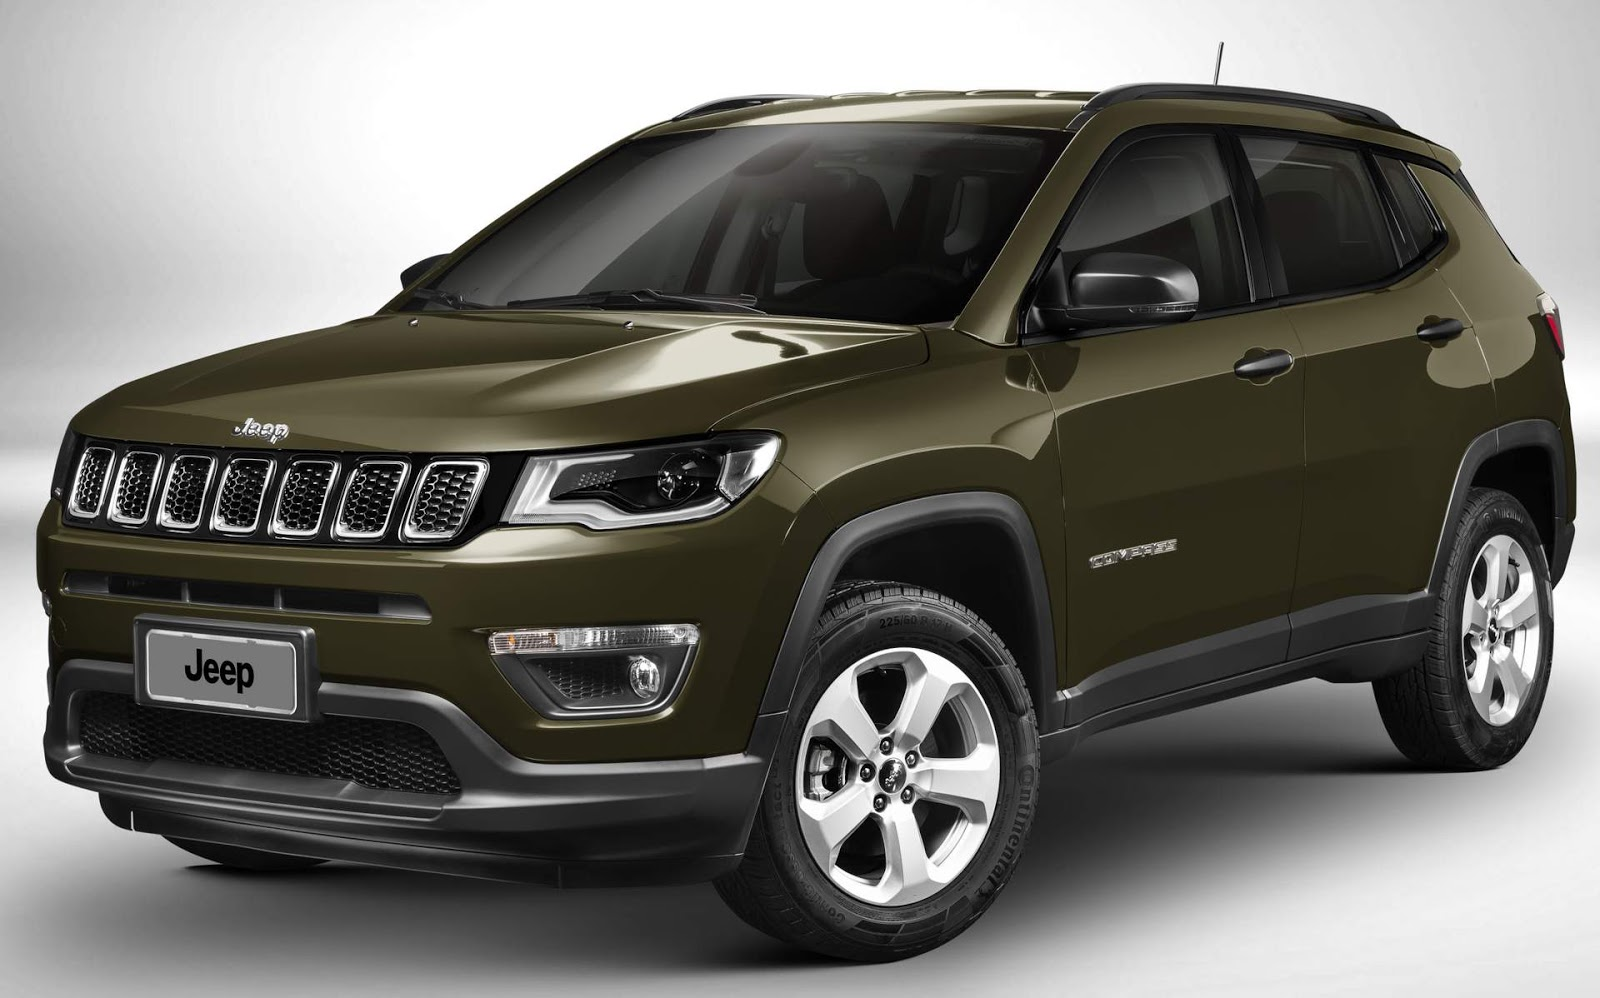 jeep compass 2018 flex 4x4 at9 dados de consumo car blog br. Black Bedroom Furniture Sets. Home Design Ideas